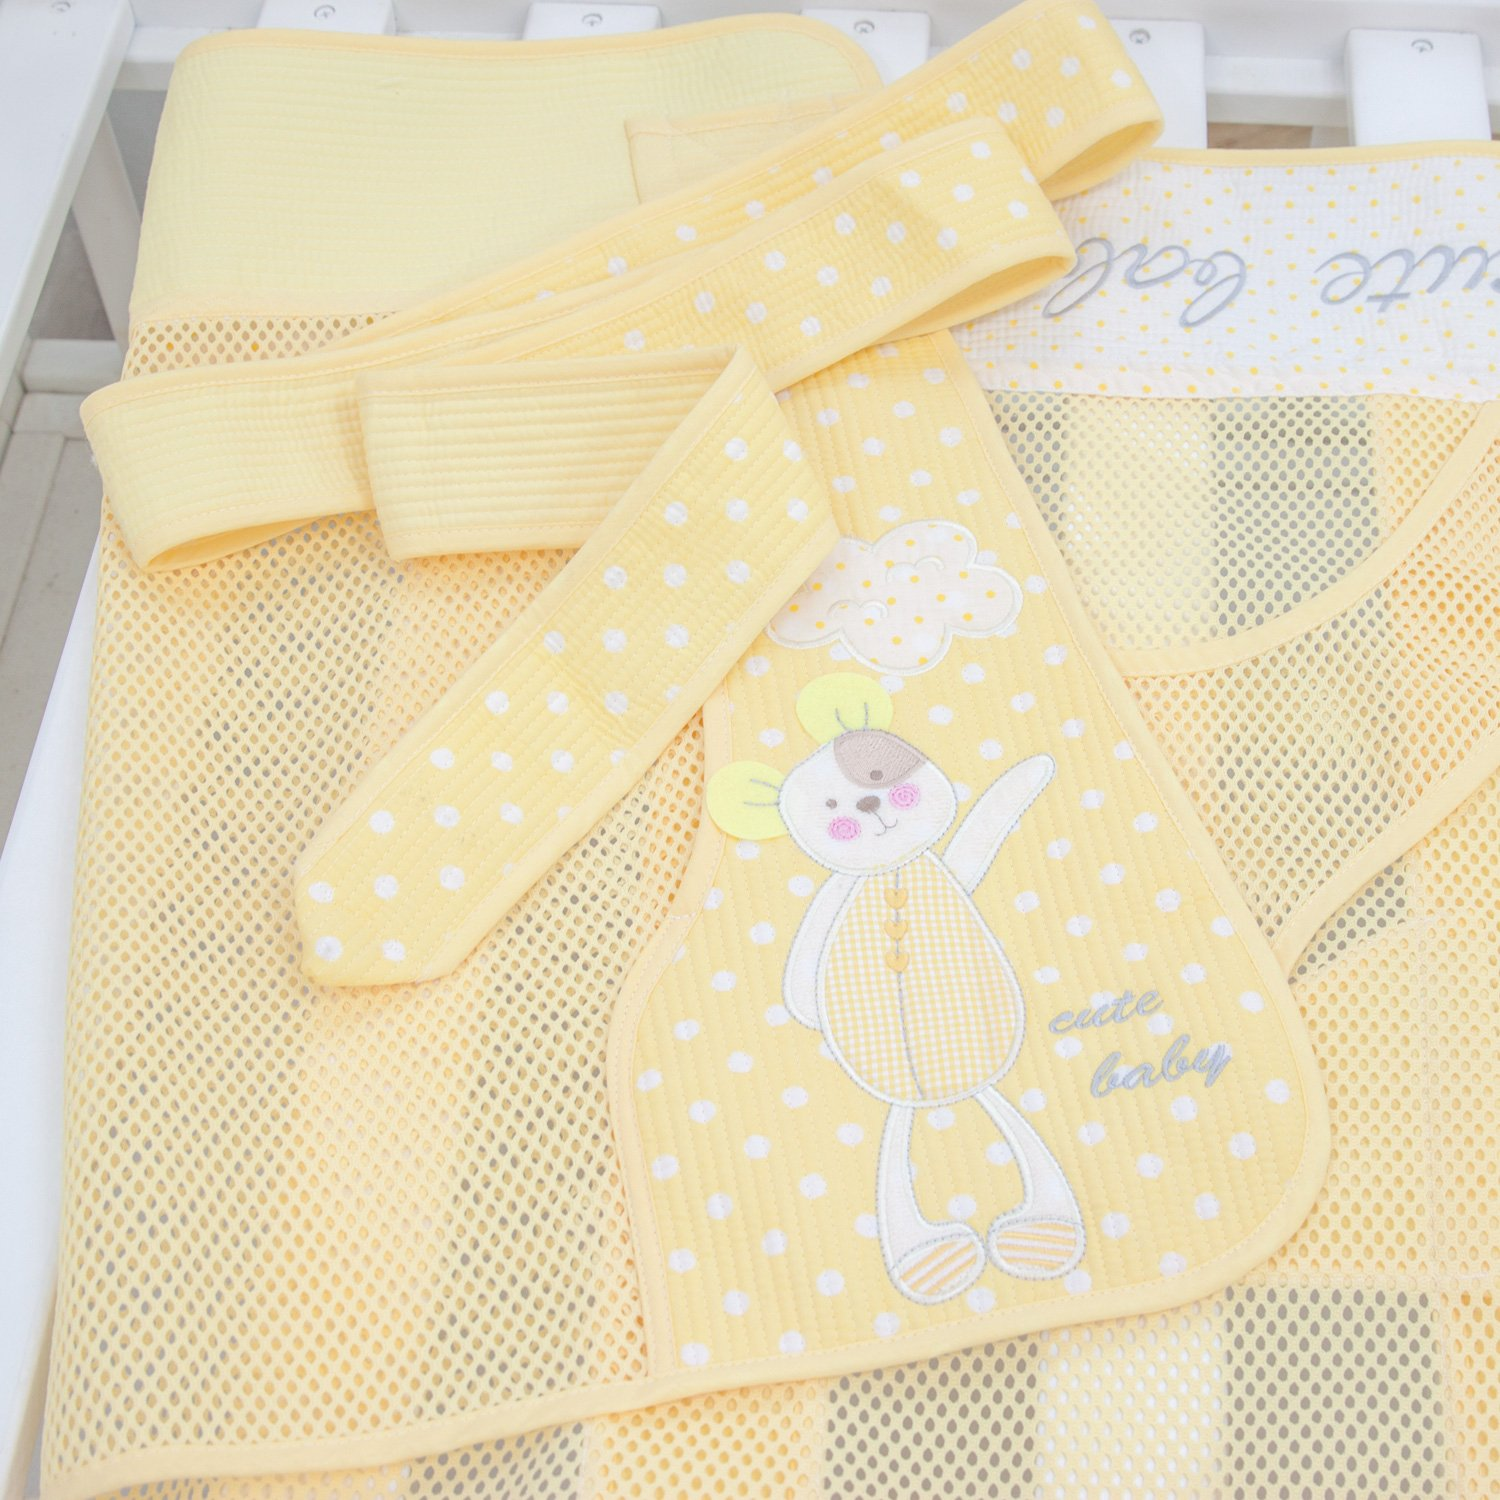 618c4169fc7 Amazon.com   Lulu Mesh Podaegi Asian Style Baby Carrier Baby Sling Toddler  Yellow   Baby